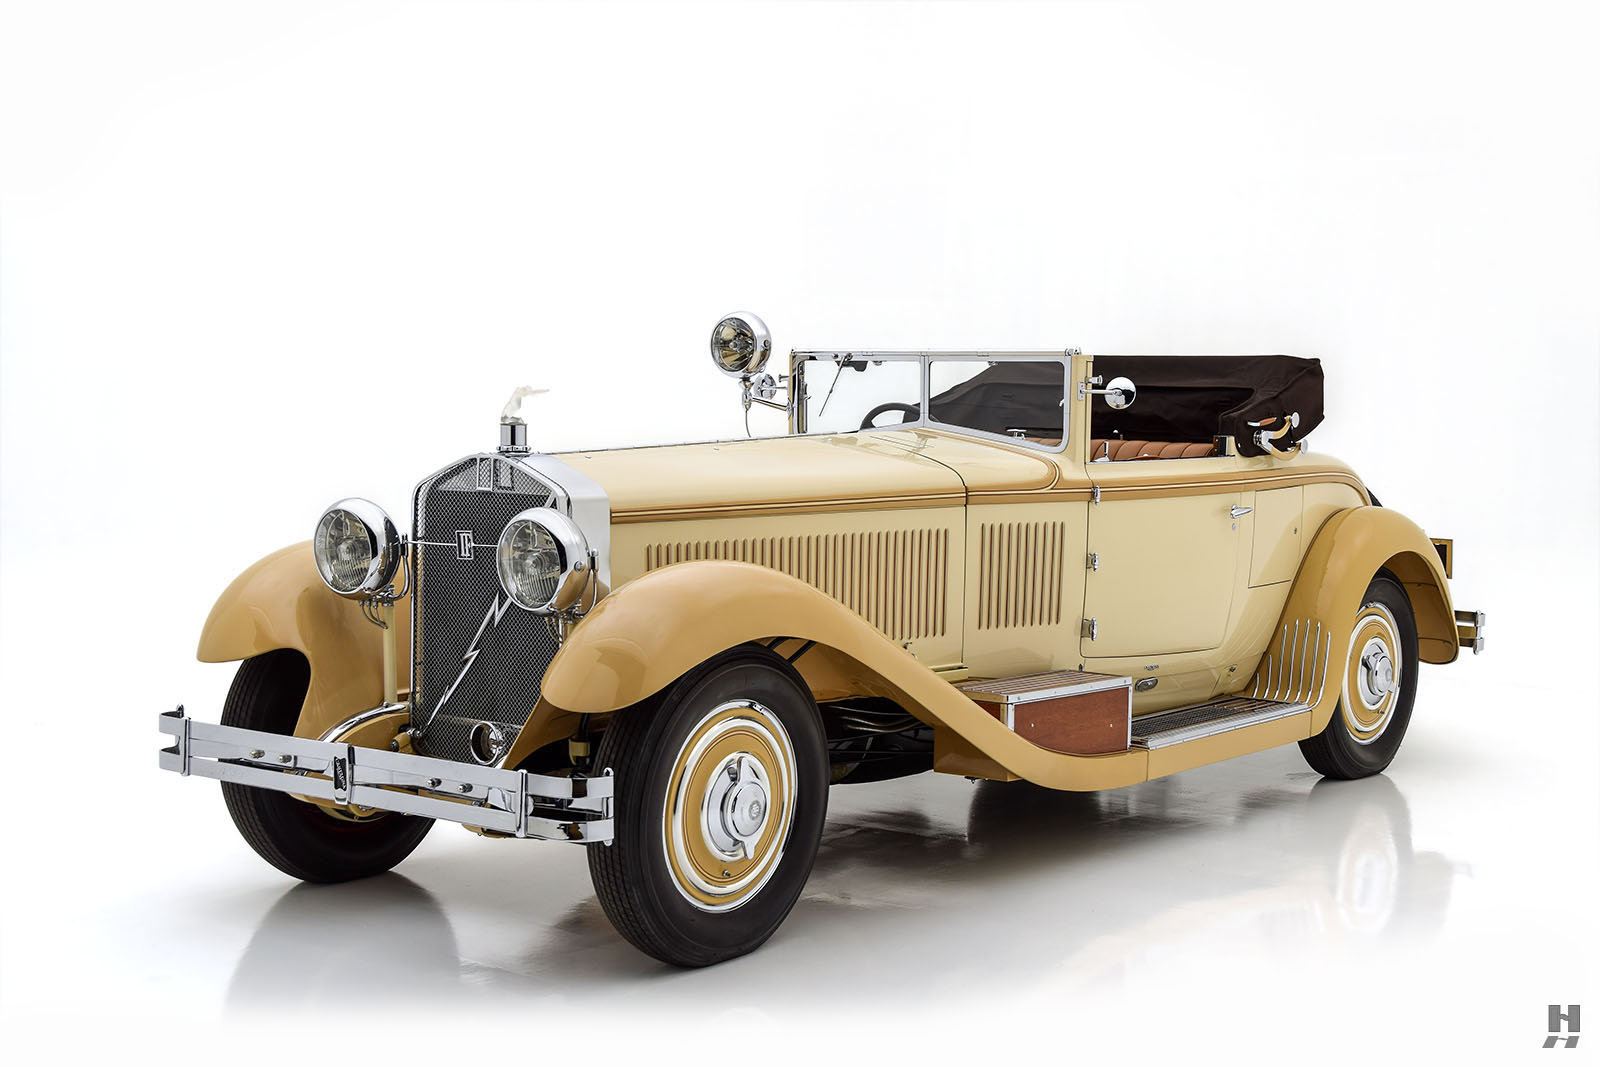 1930 ISOTTA FRASCHINI 8A SS CASTAGNA ROADSTER For Sale (picture 1 of 6)